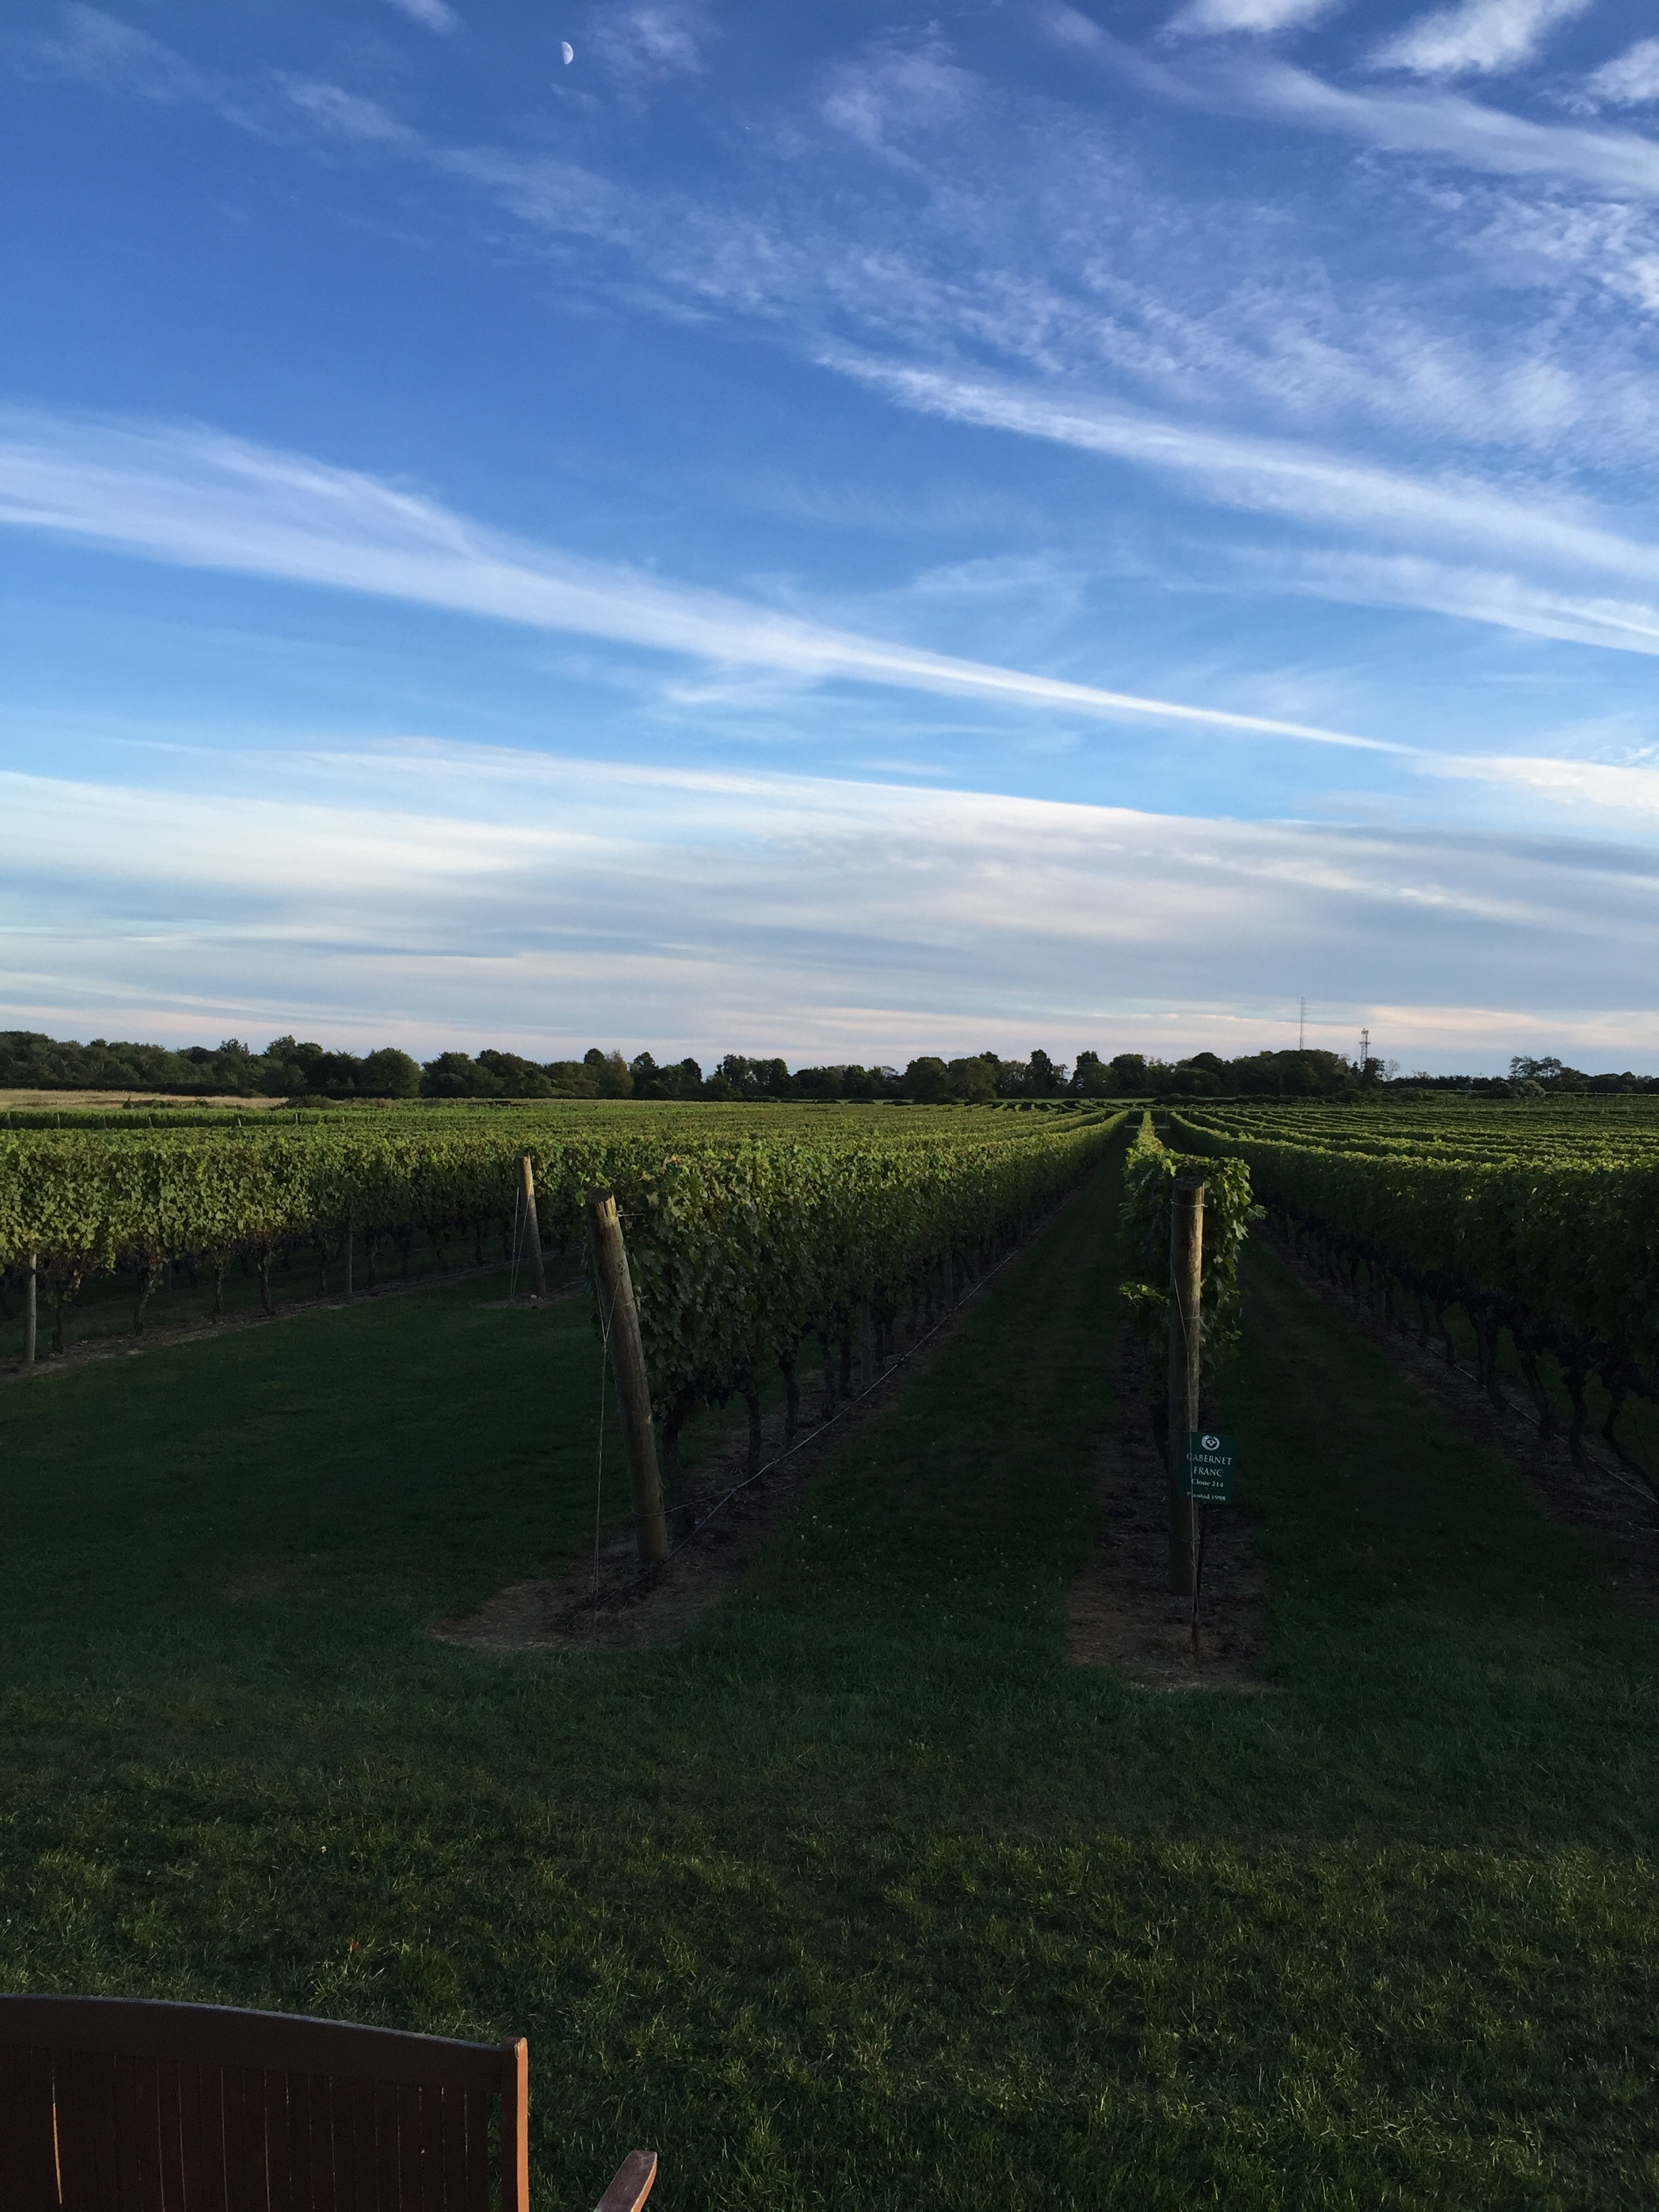 The View of the Vineyards